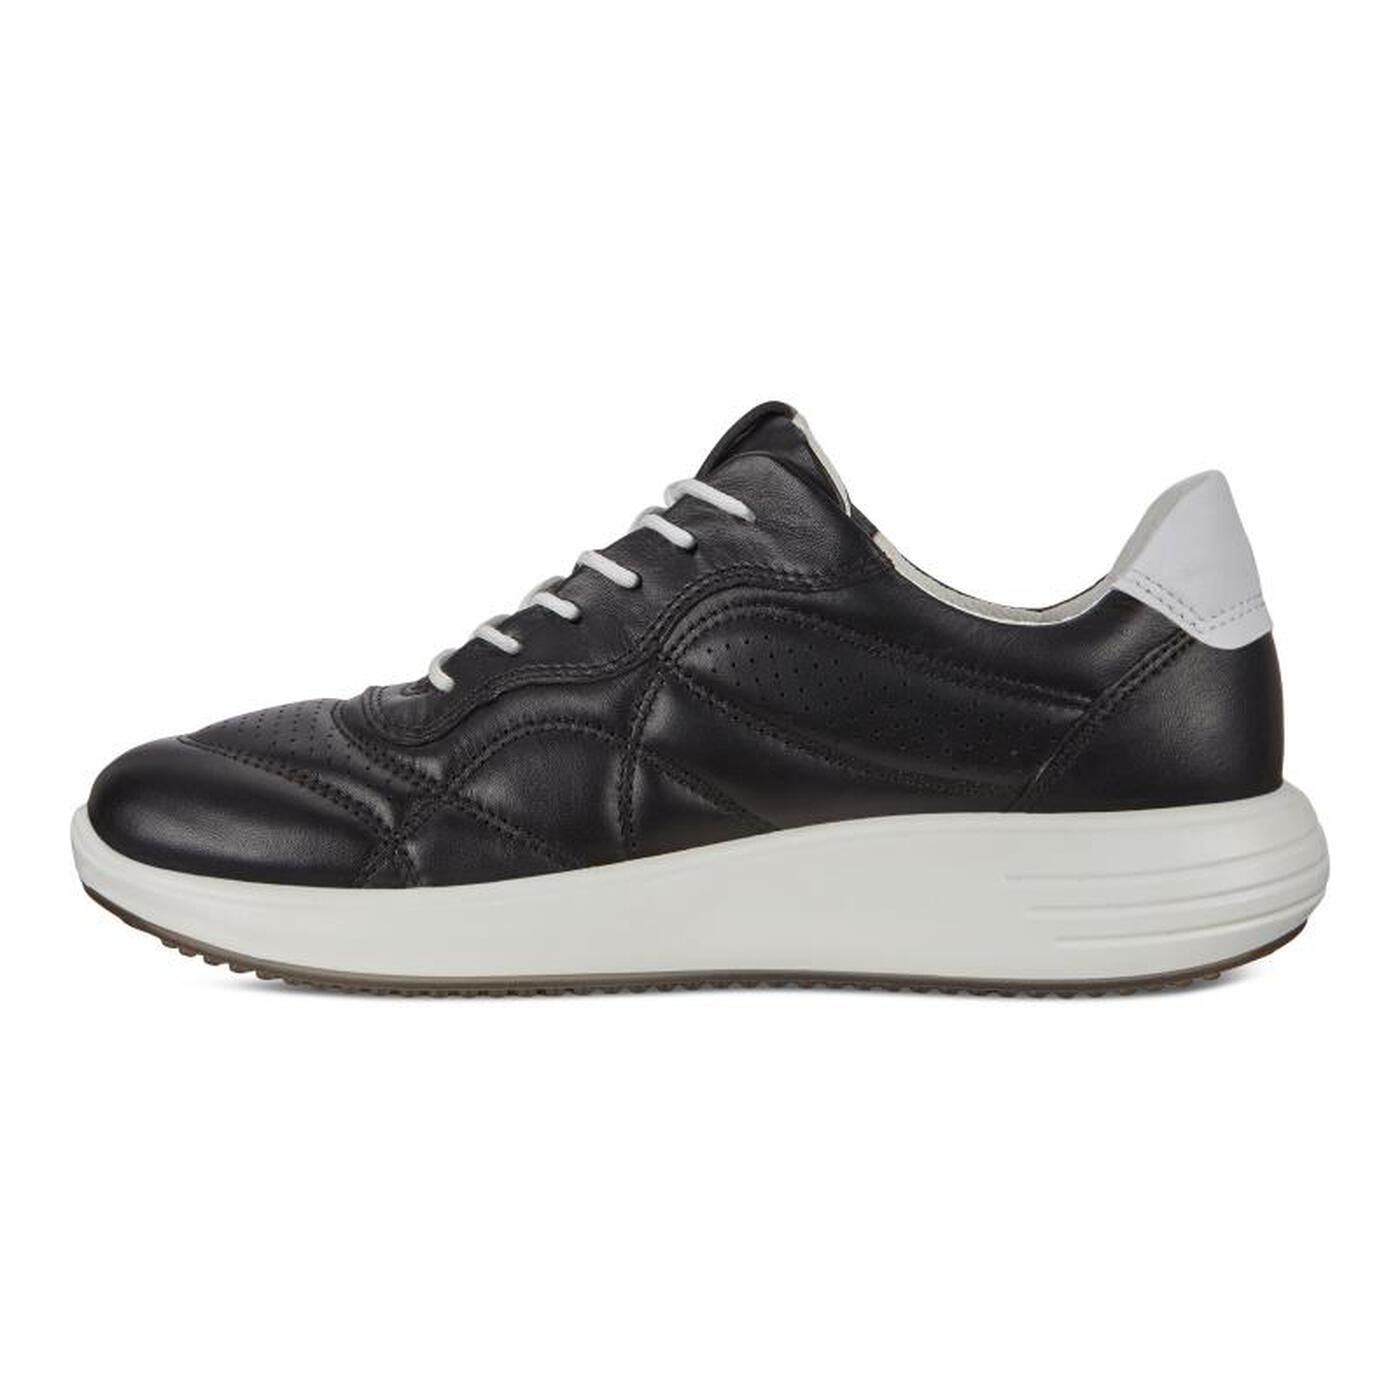 ECCO Soft 7 Runner Womens